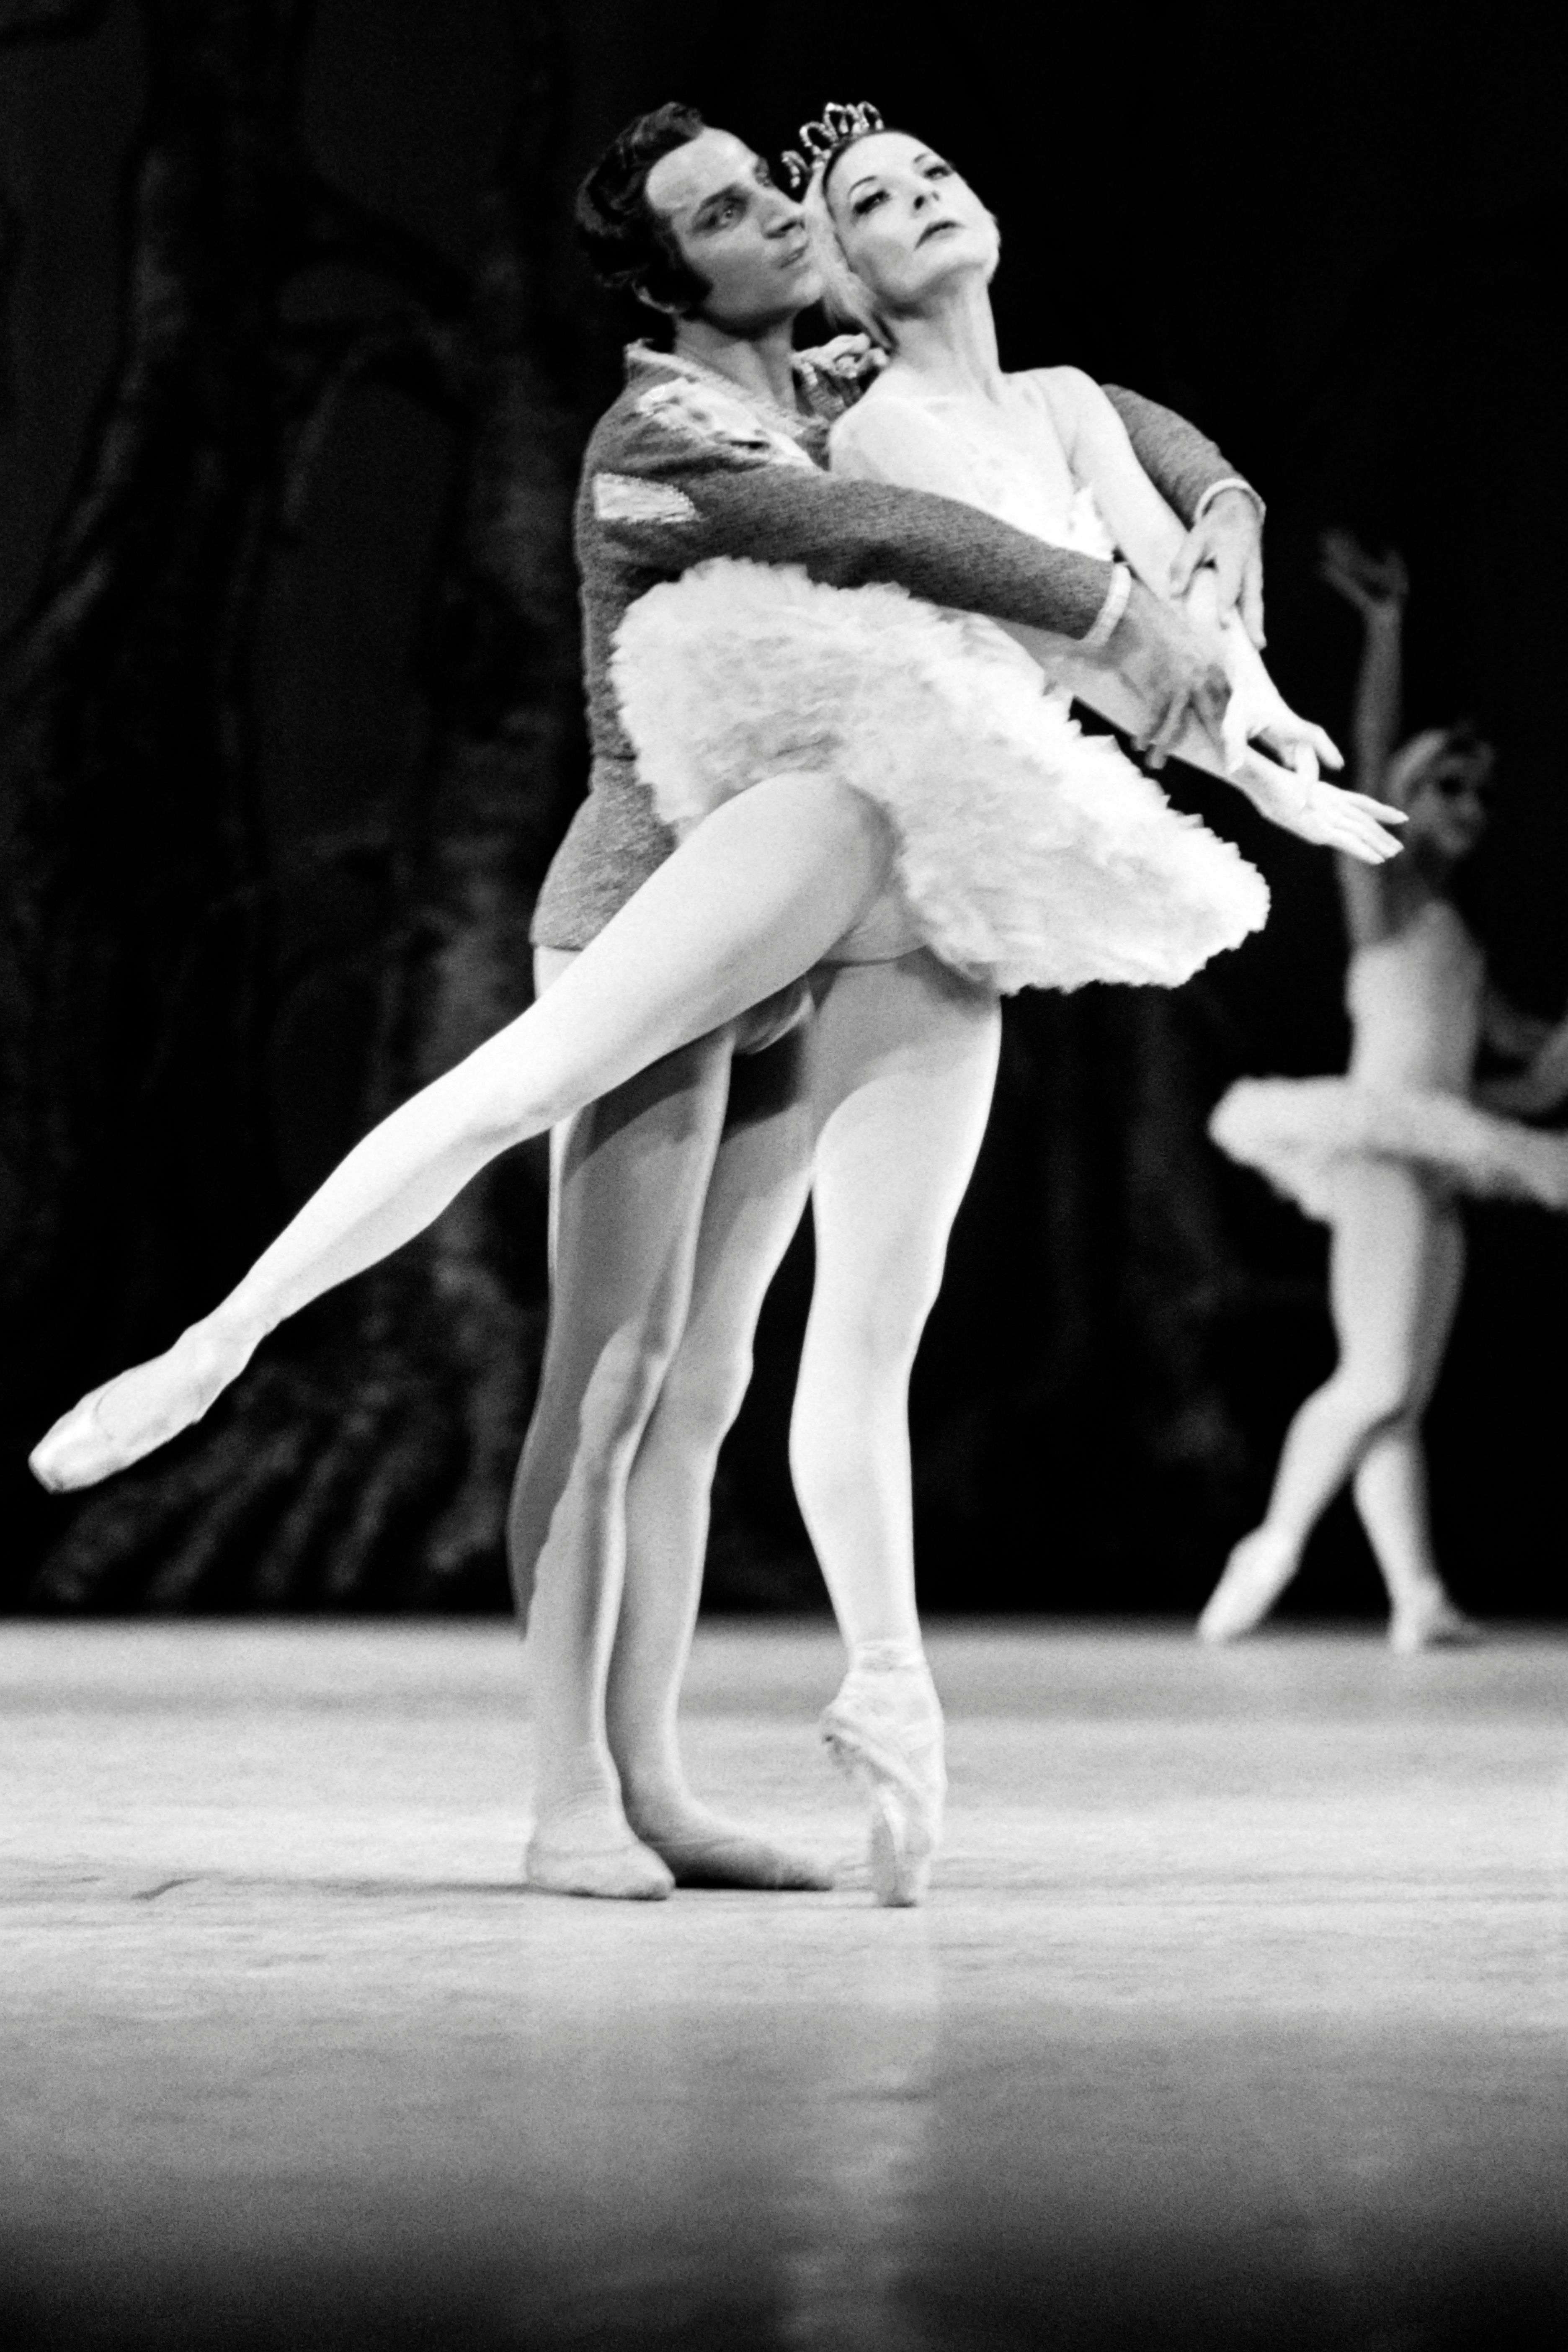 """Cuban prima ballerina assoluta Alicia Alonso (R) and Russian Azari Plisetski perform """"Swan Lake"""" at the Chmap Elysées theater Paris on December 1, 1970. (Photo by - / AFP) (Photo credit should read -/AFP/Getty Images)"""